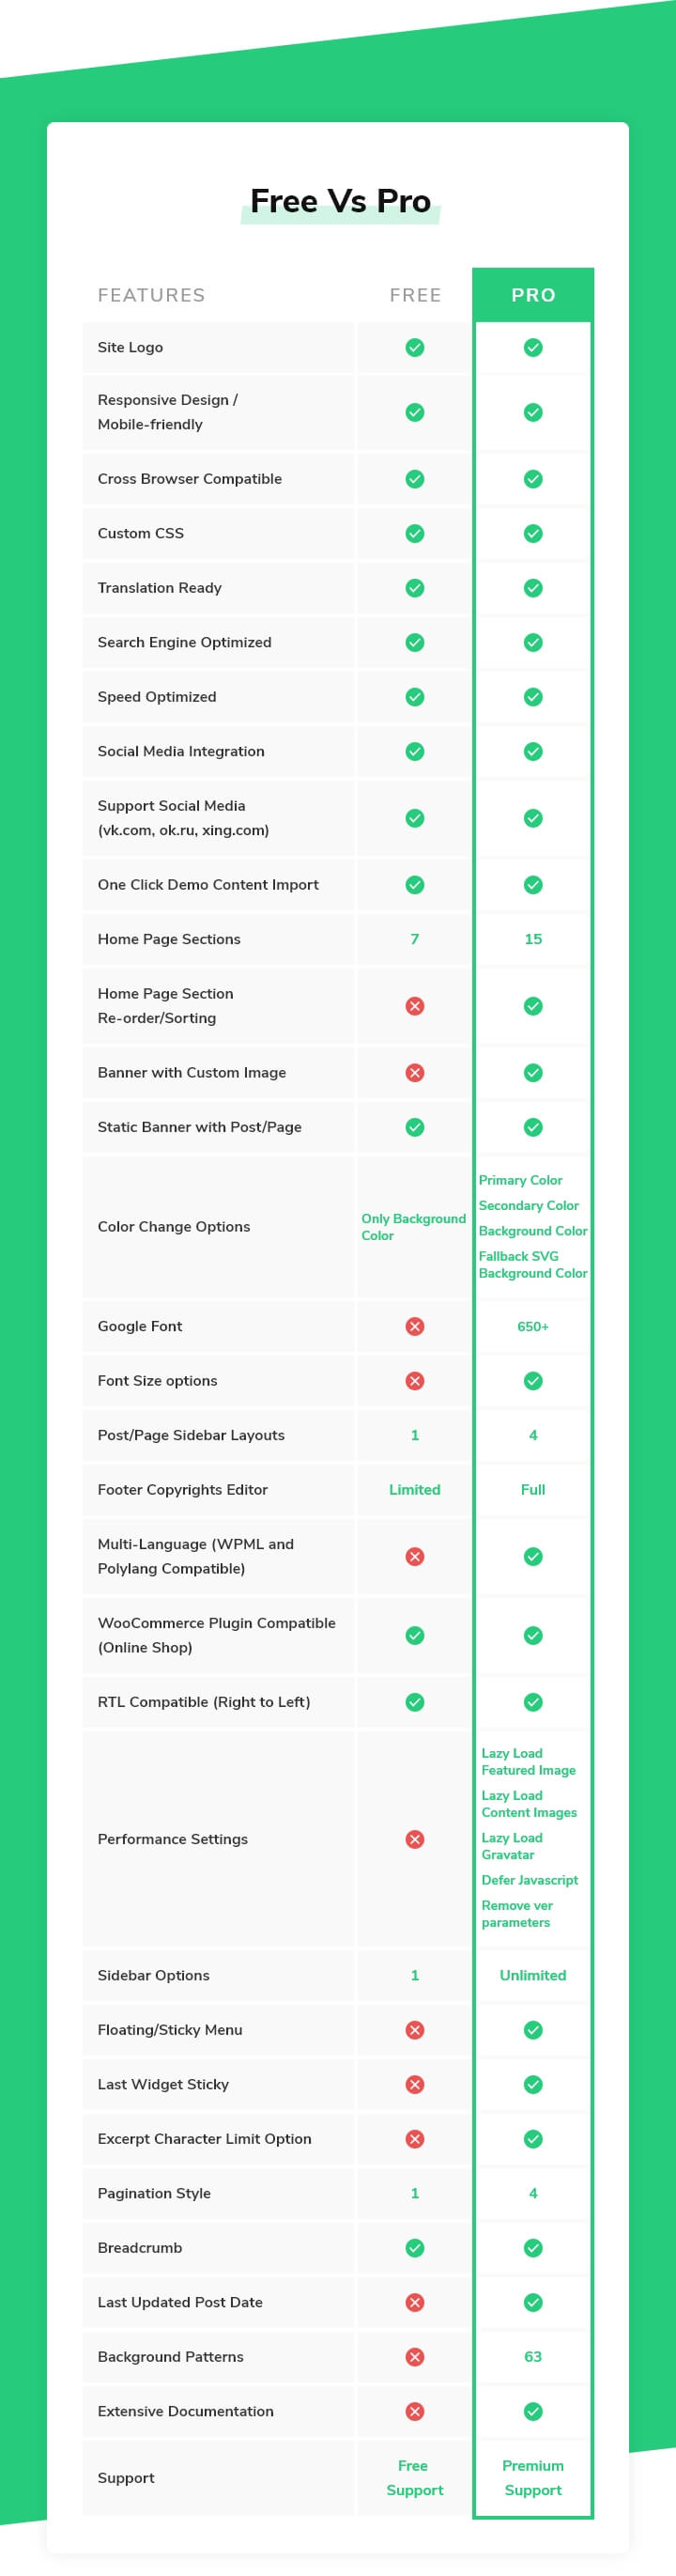 book landing free vs pro comparison chart